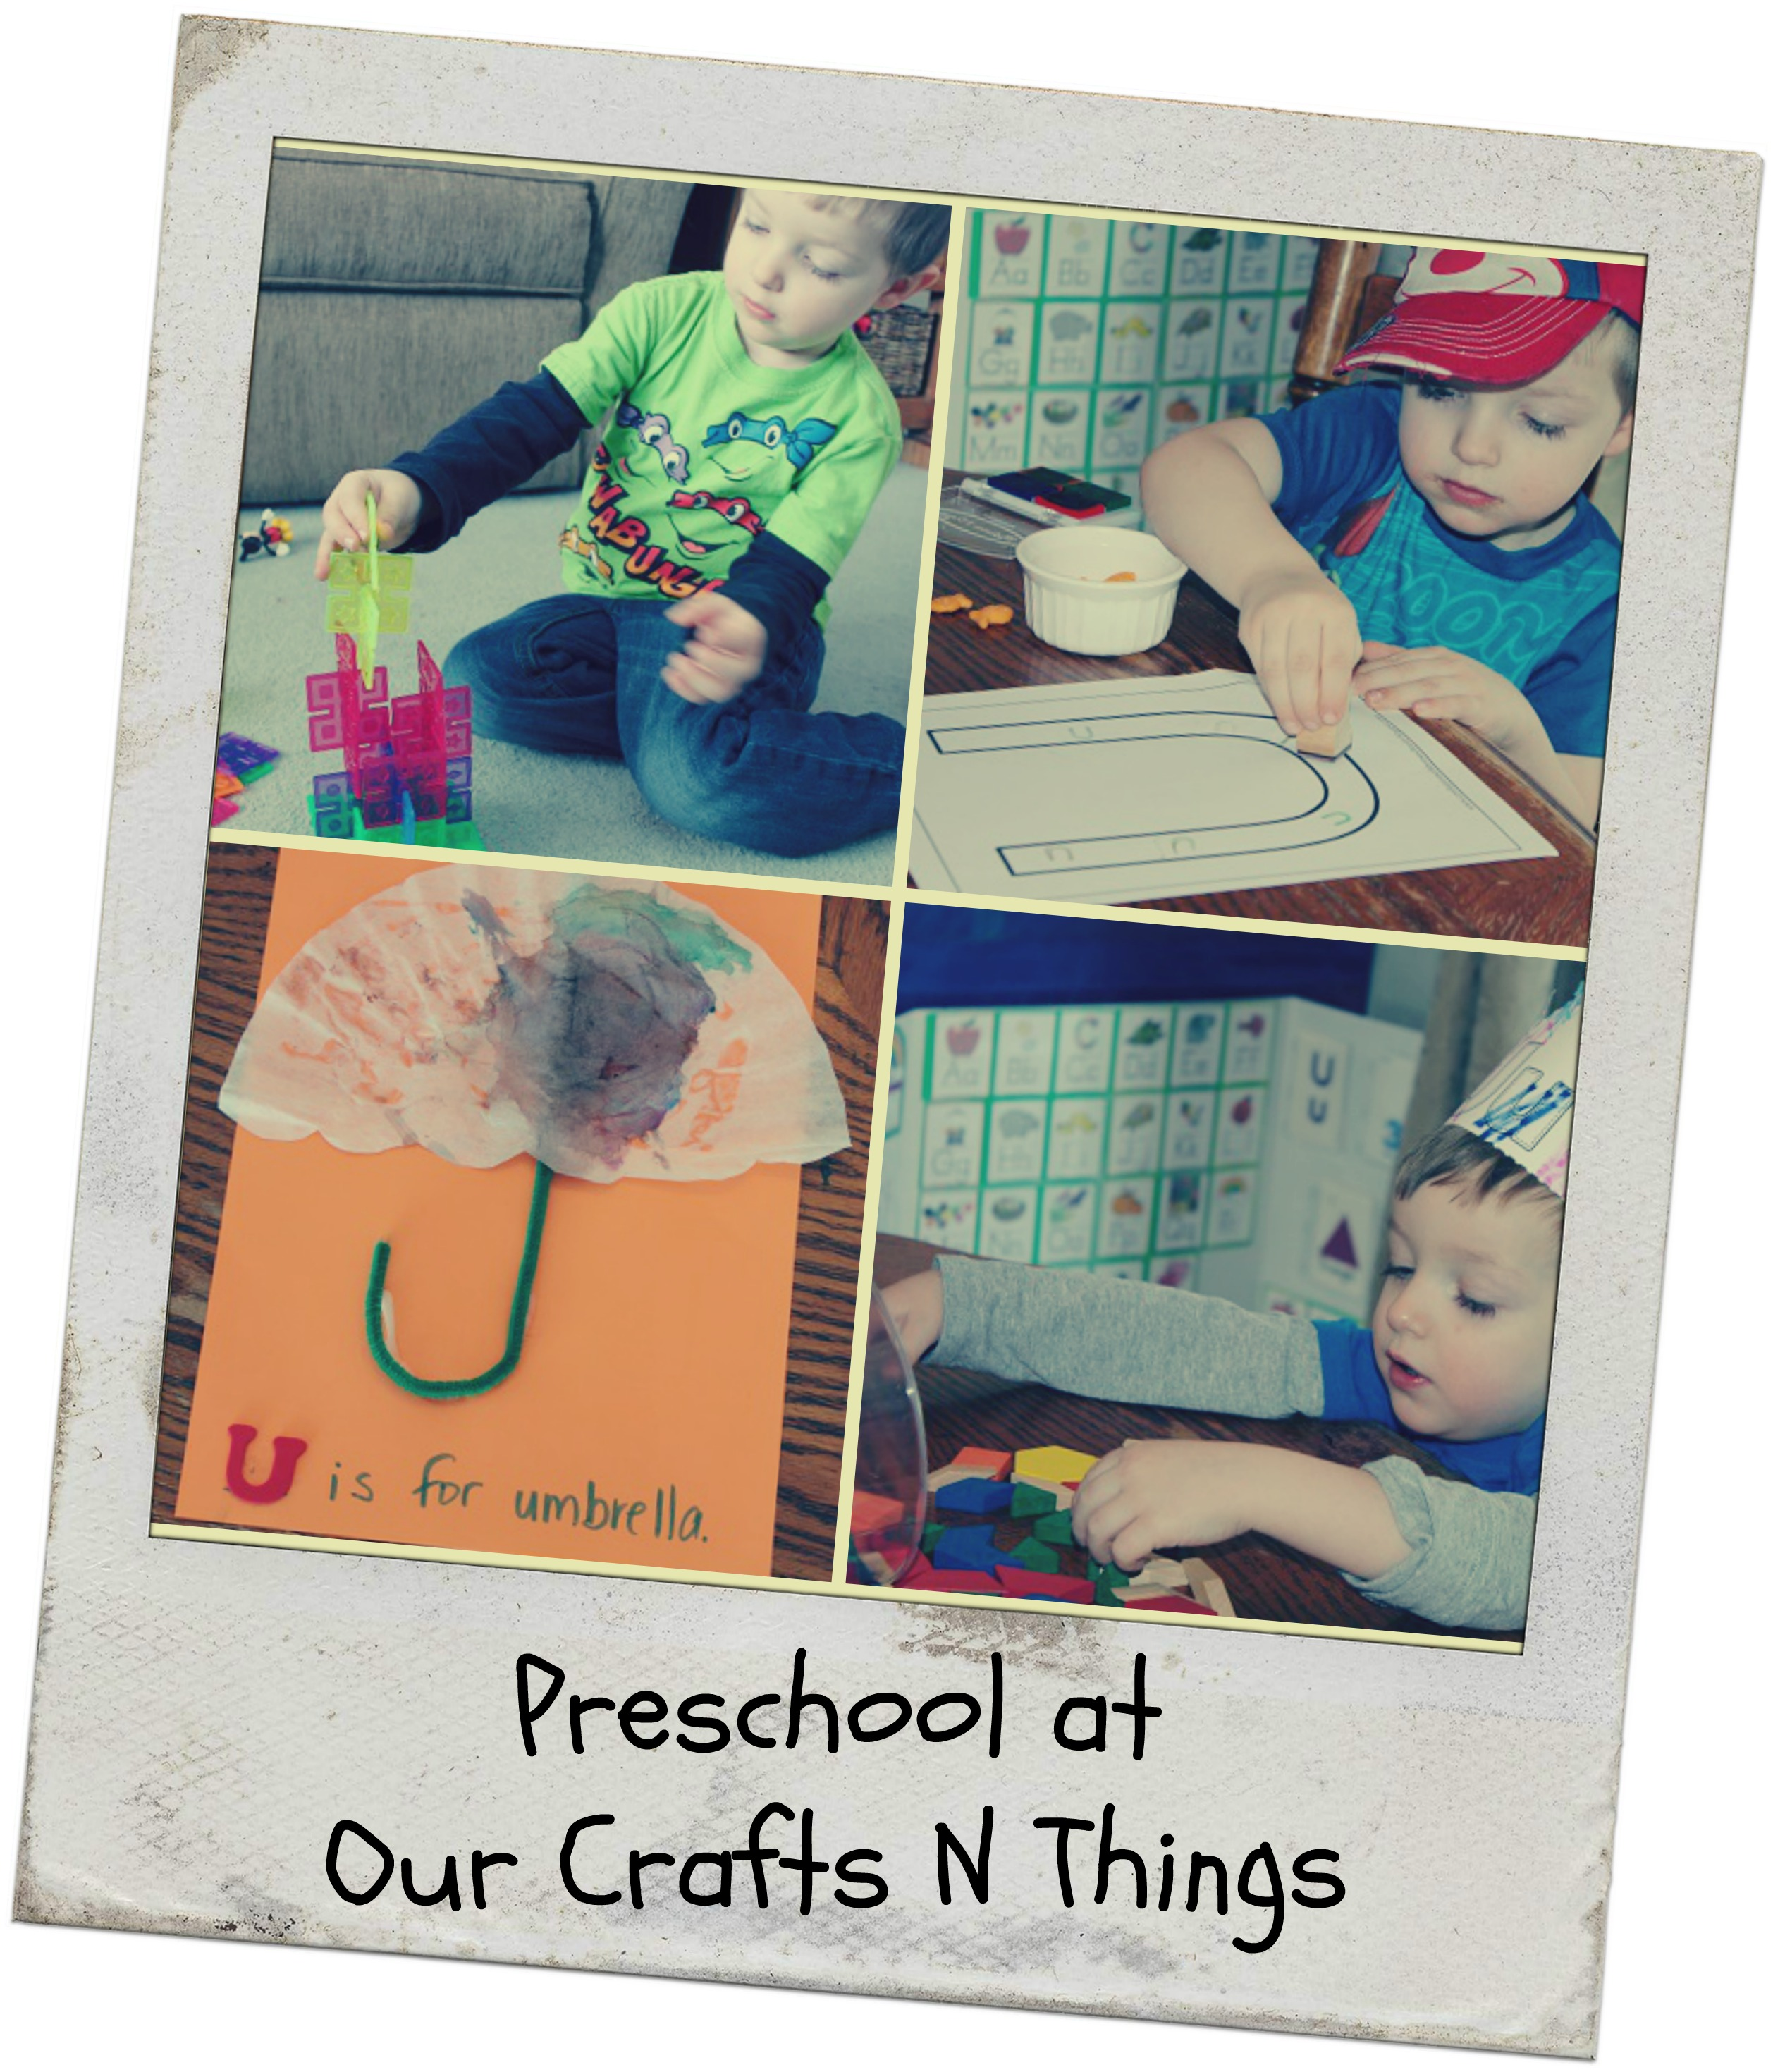 Our Crafts N Things Letter U